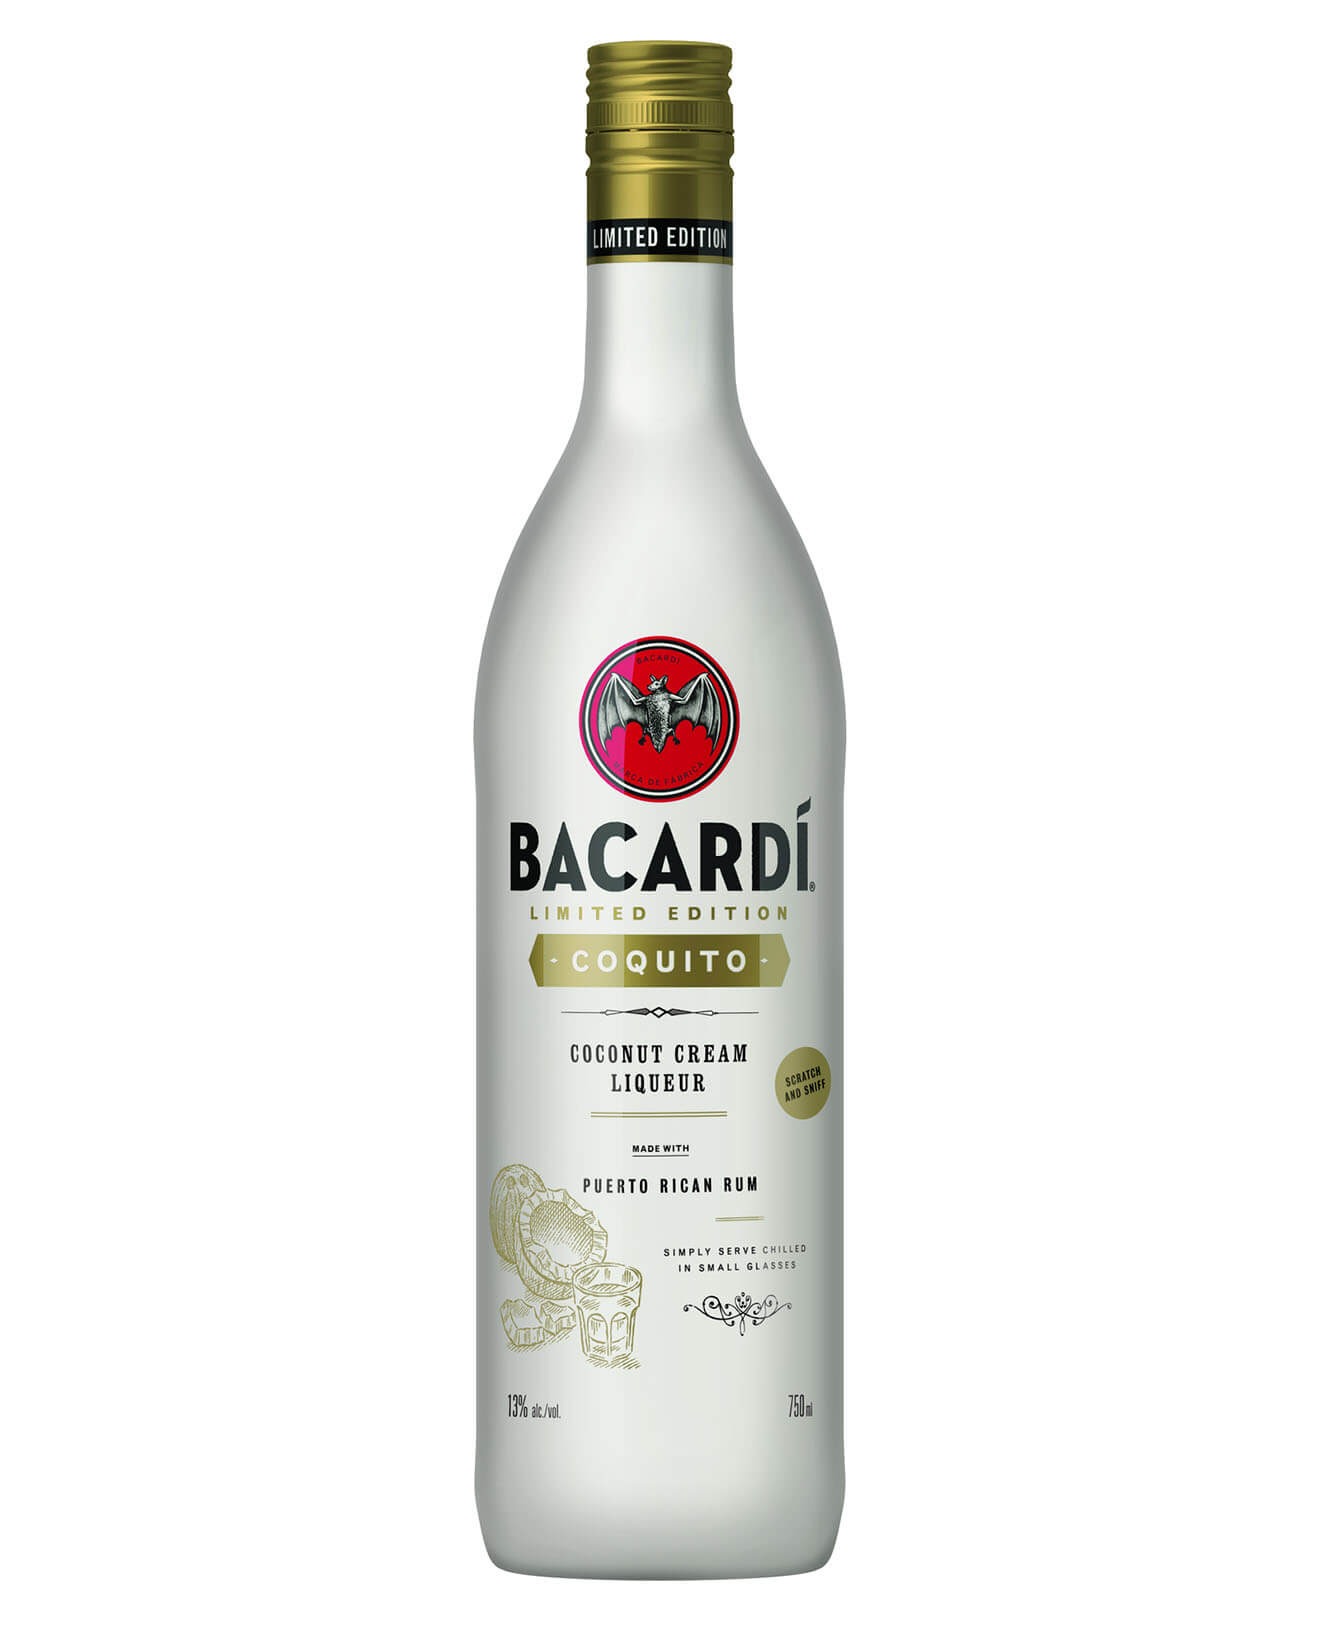 BACARDÍ Coquito, bottle on white